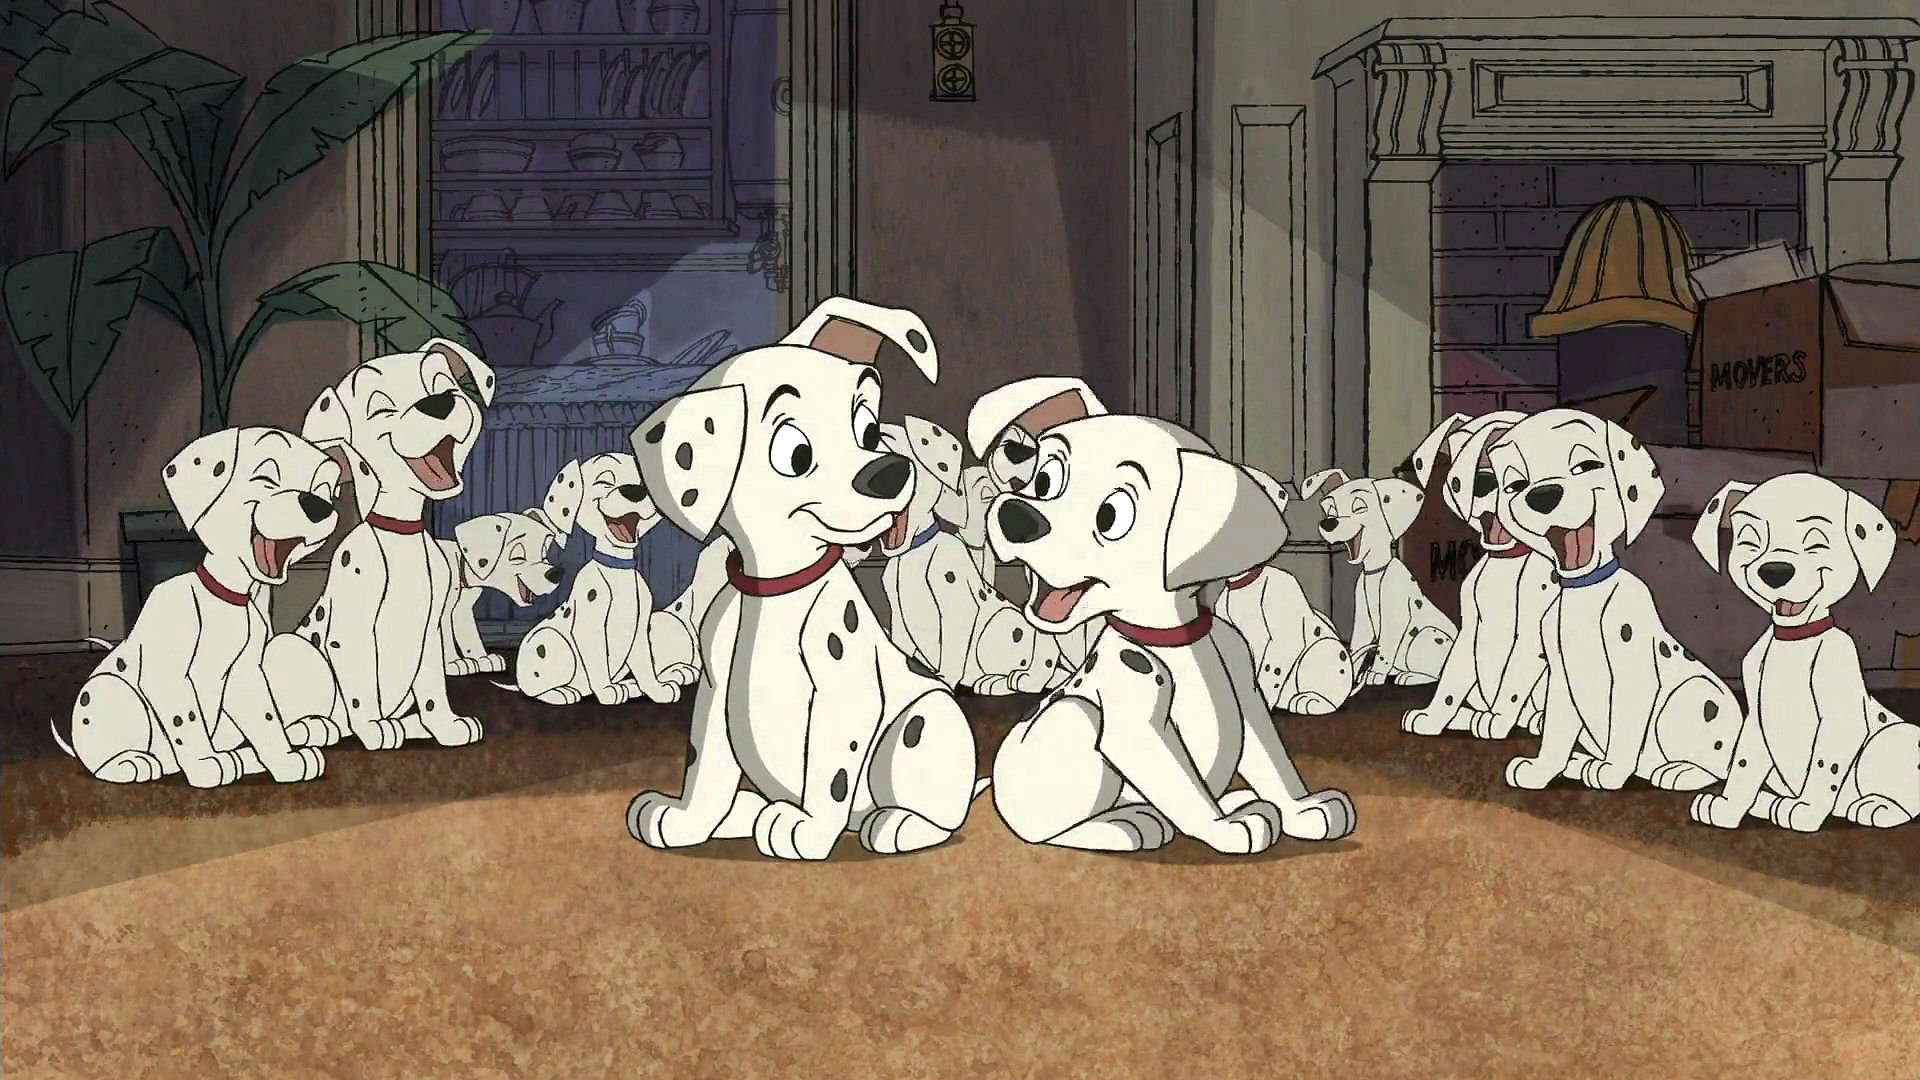 101-DALMATIANS comedy adventure family dog puppy 100 dalmatians disney